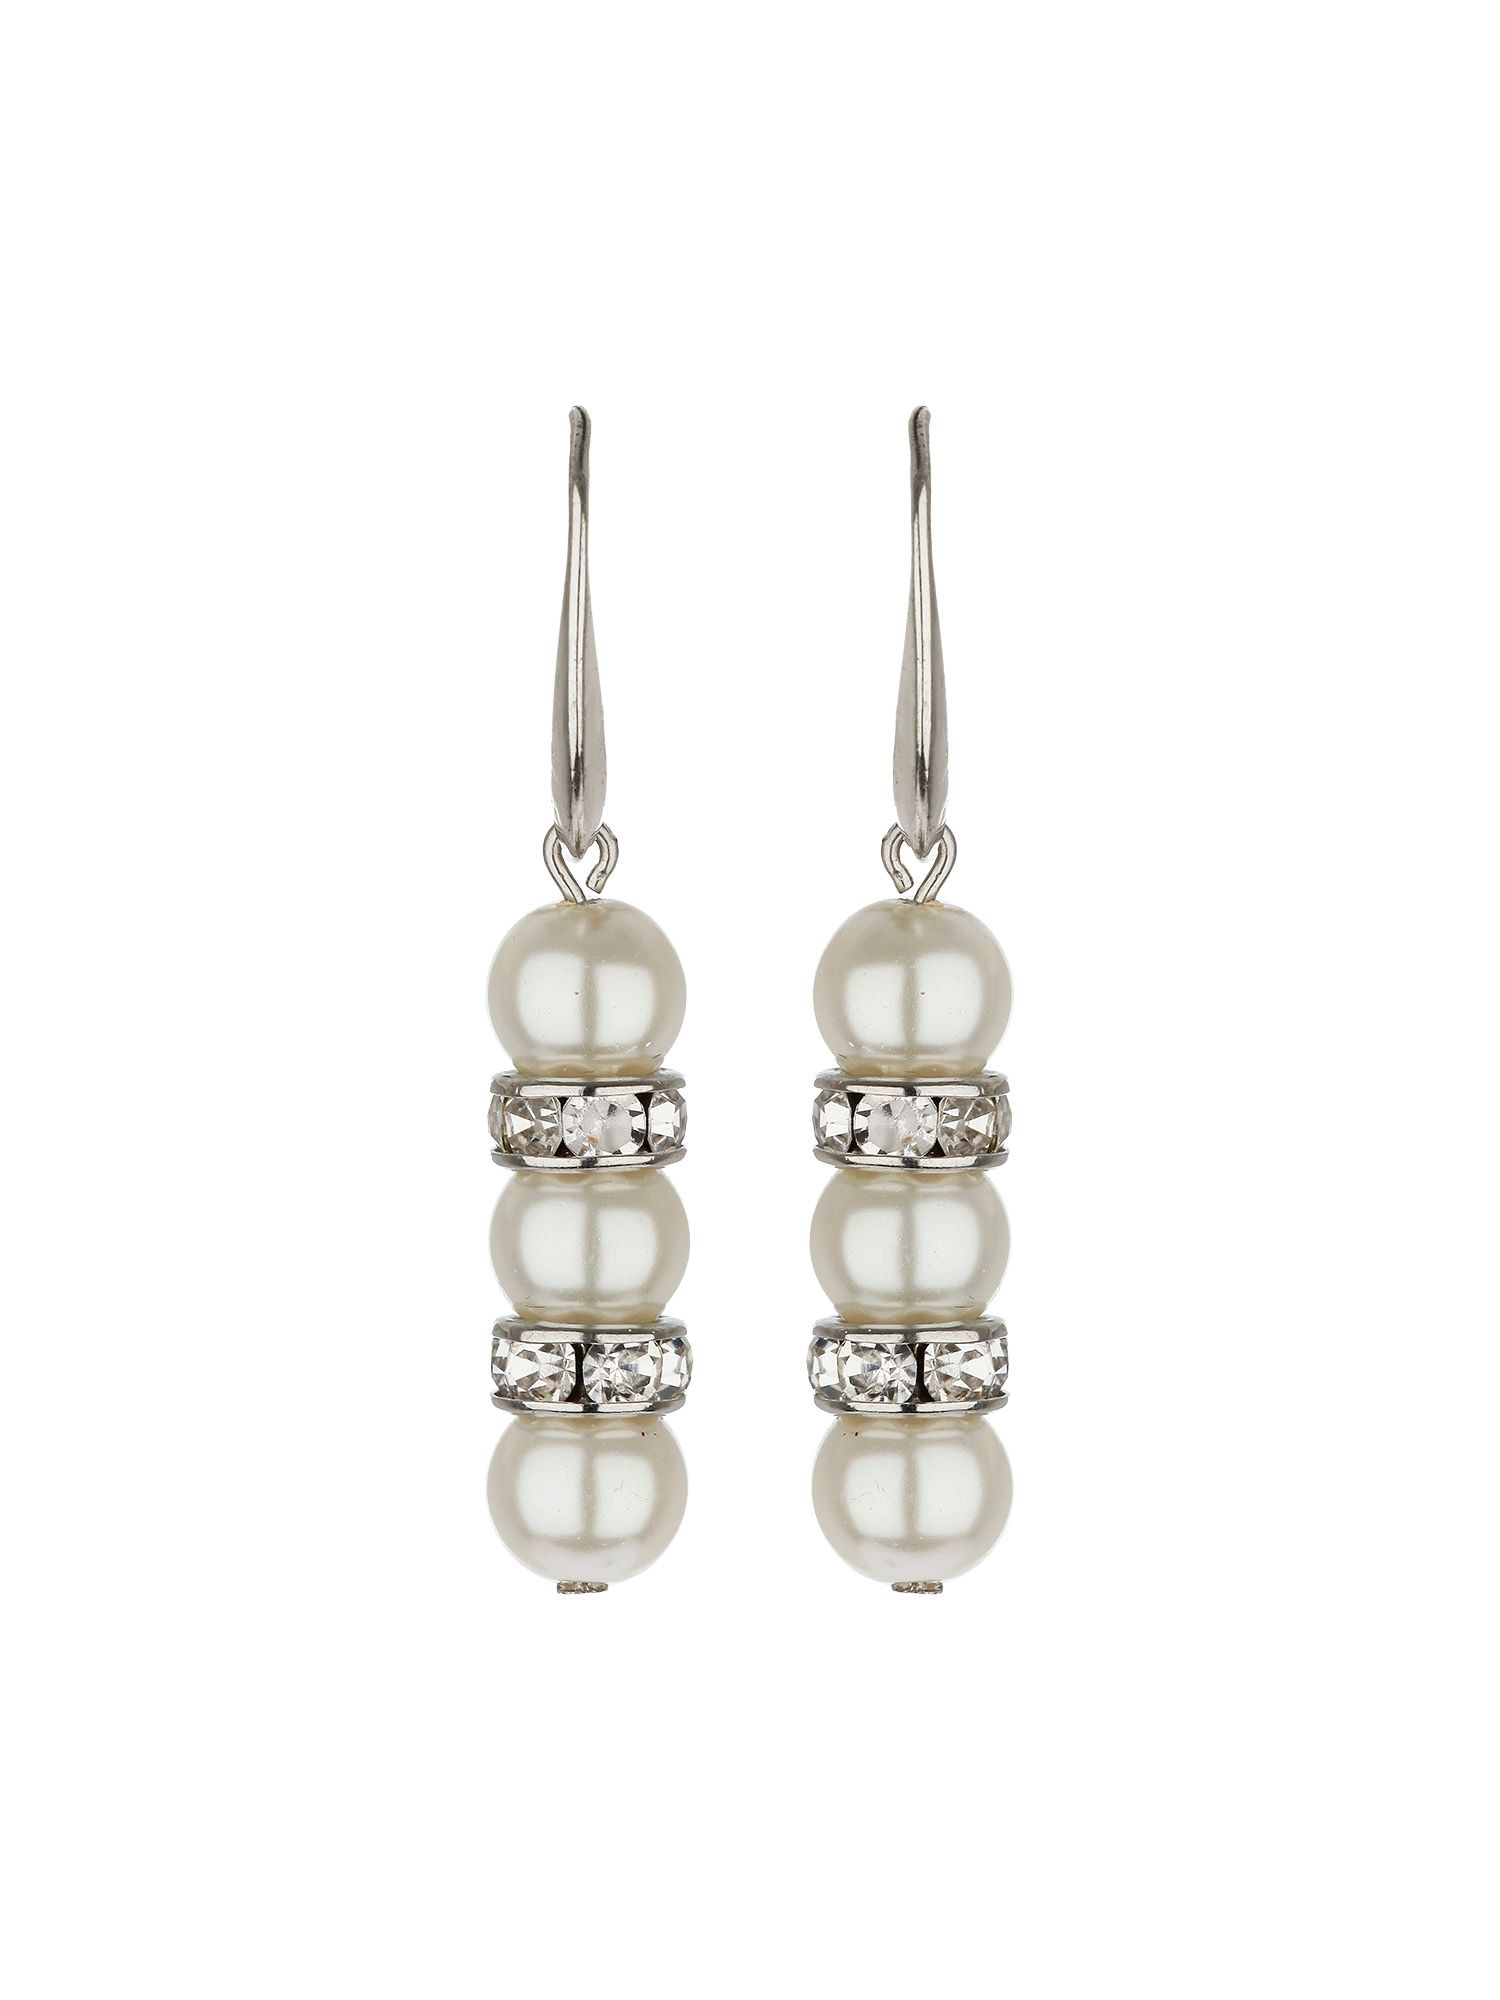 Pear with crystal ring earrings